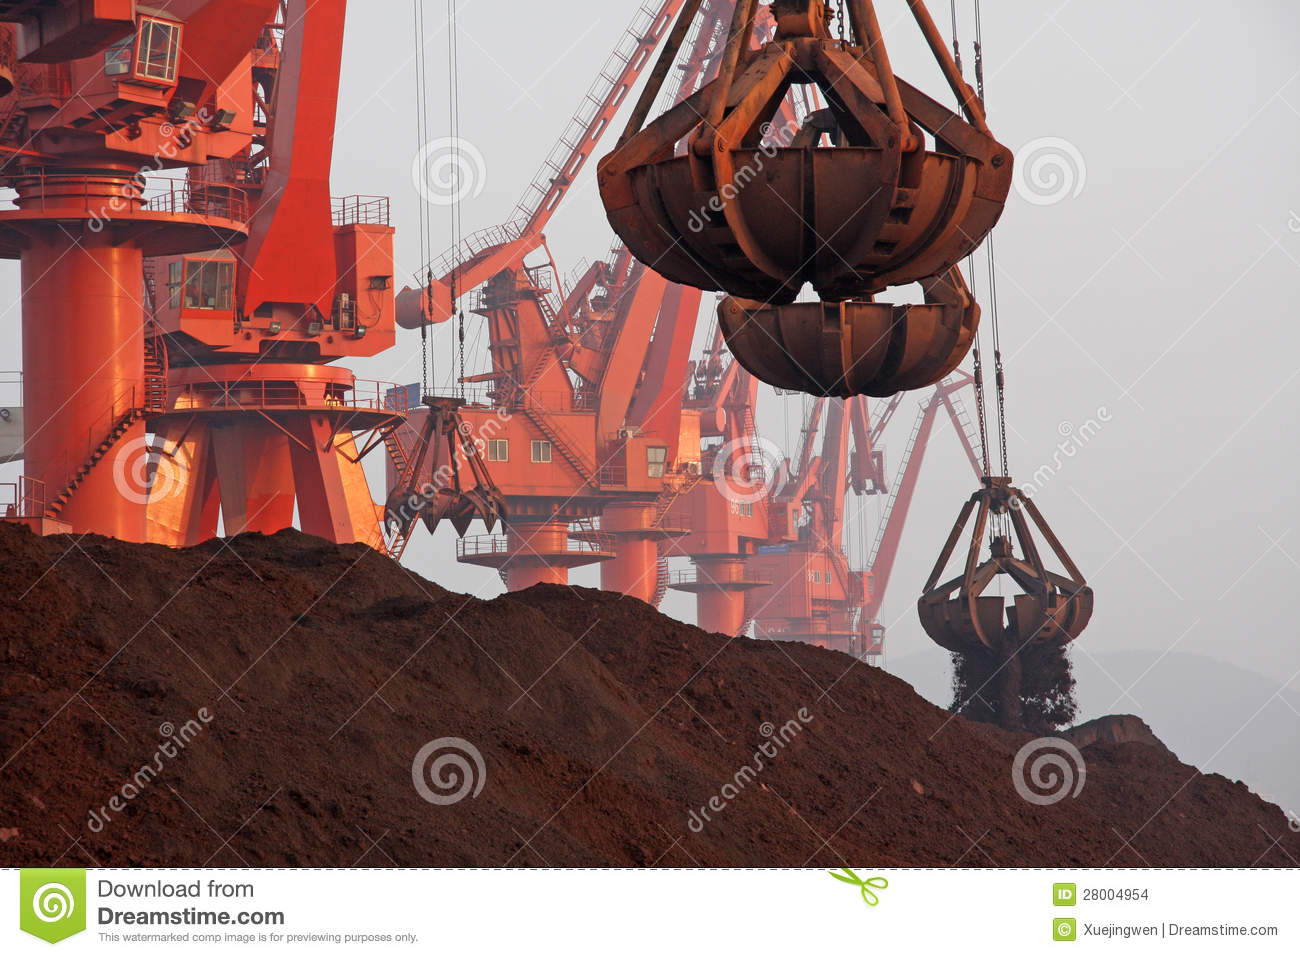 In 2012, Chinas decline in demand for iron ore